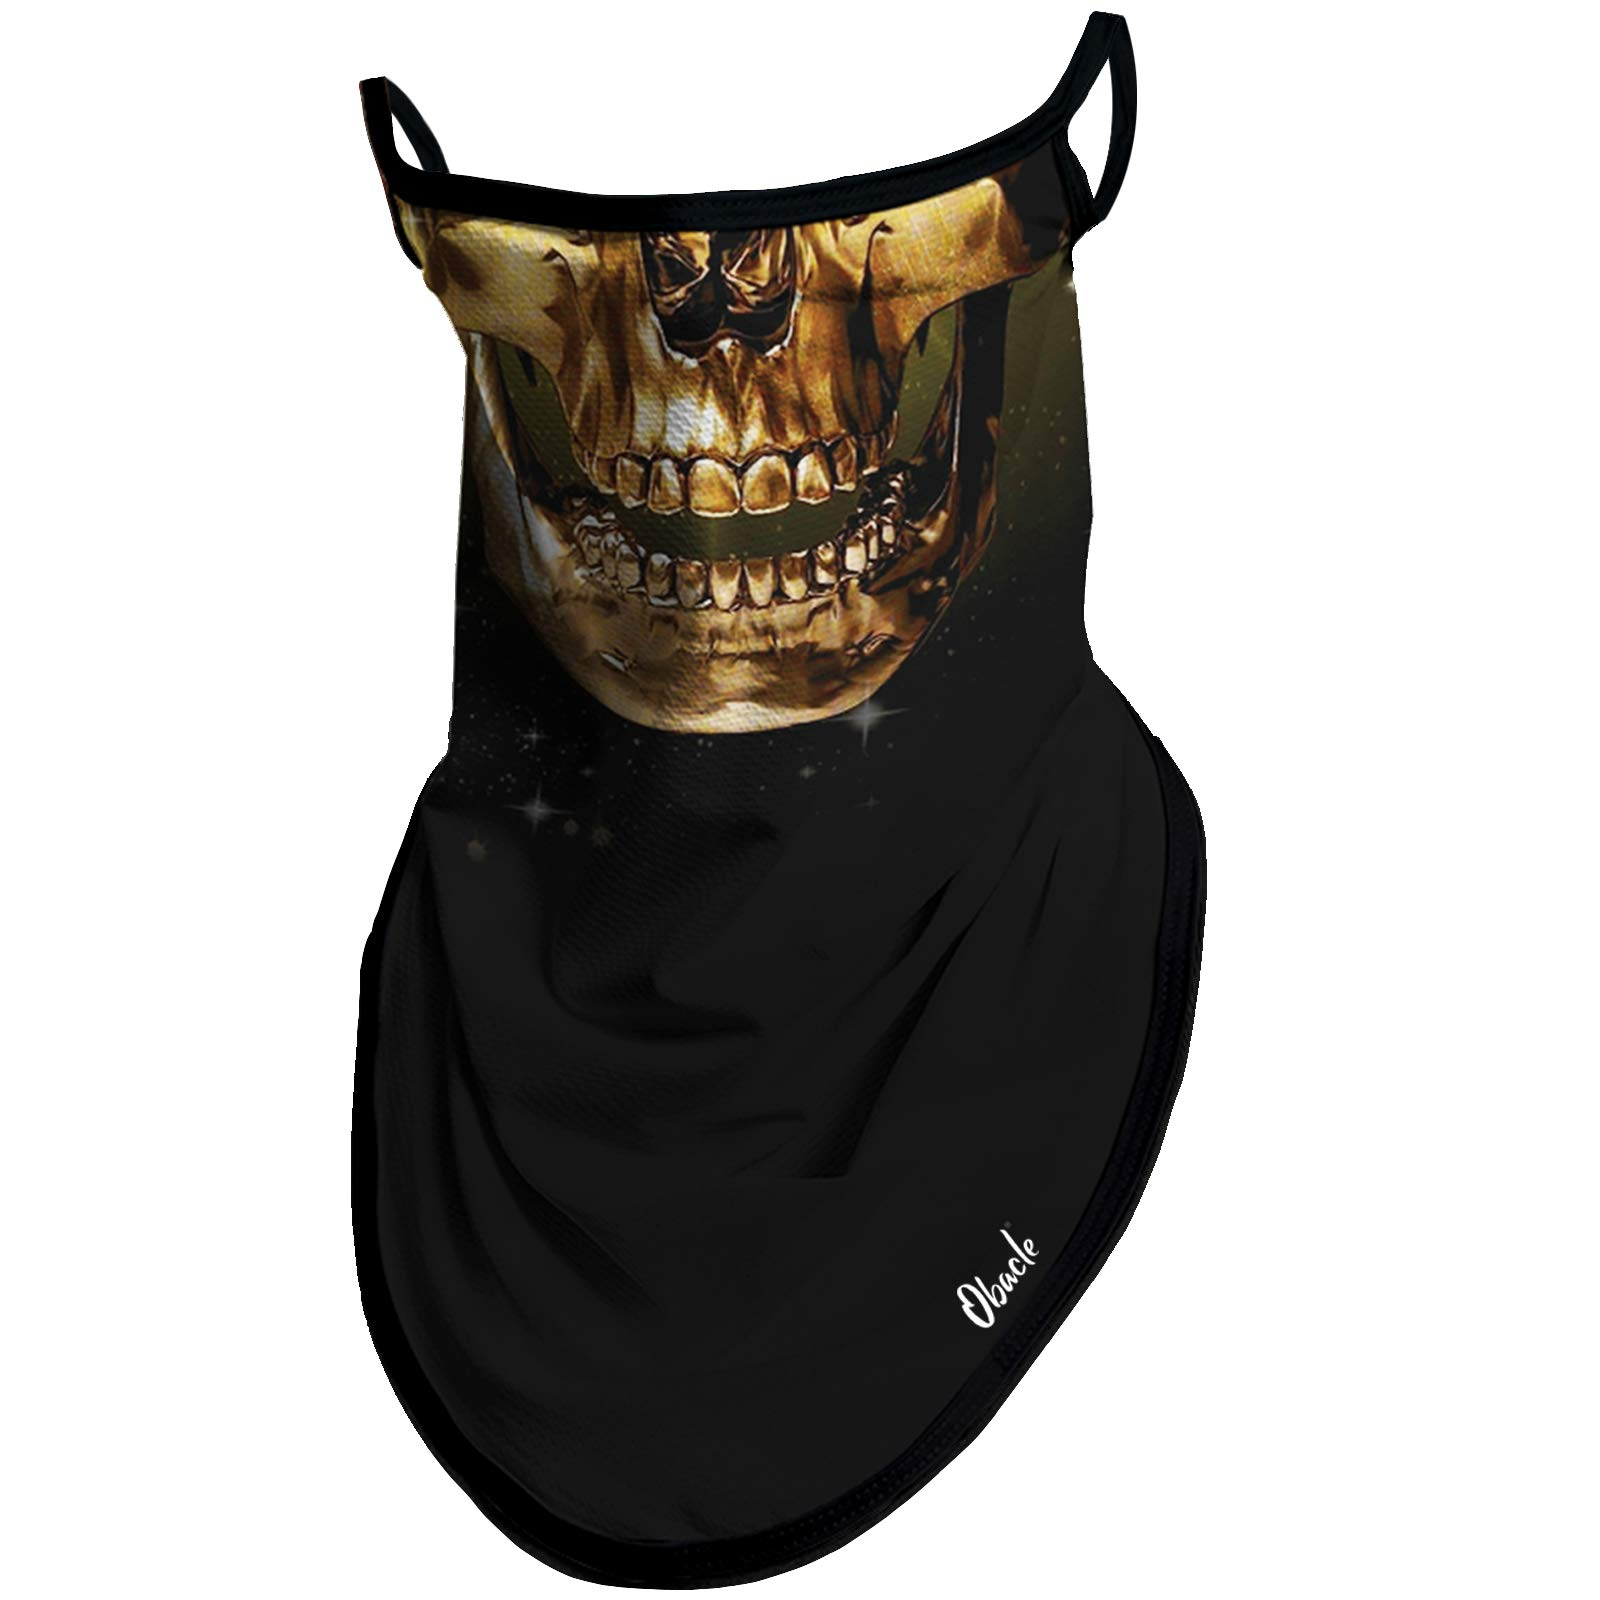 Obacle Neck Gaiter Face Mask with Ear Loops Bandana Face Mask Scarf Face Cover for Men Women